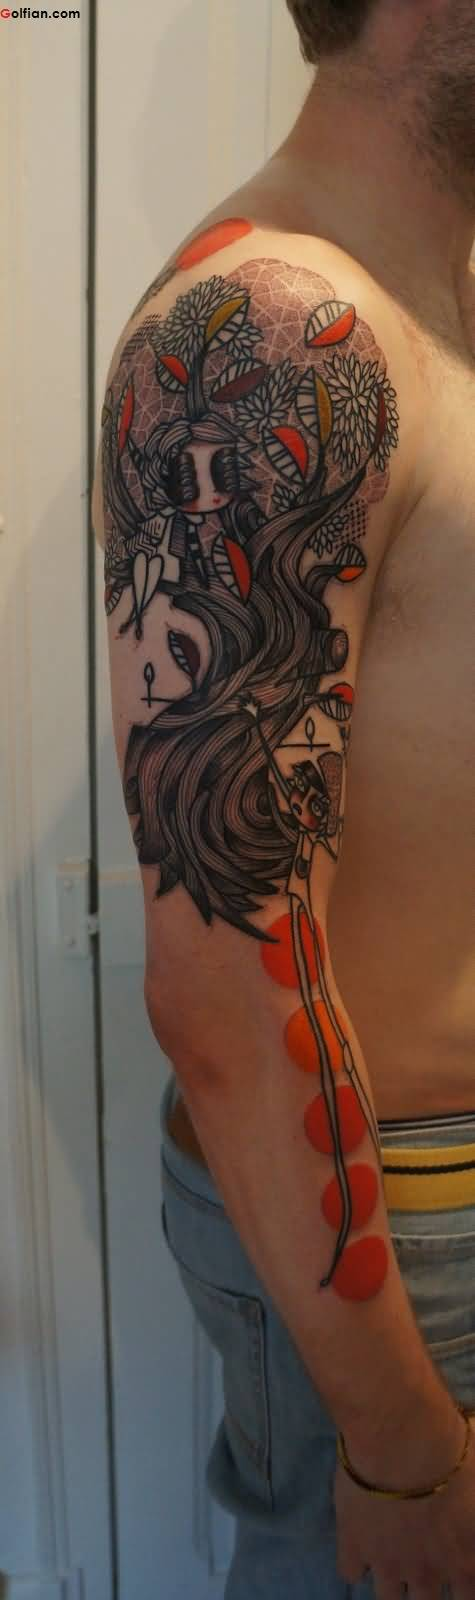 Most Amazing Arm Tattoo Design For Funky Men